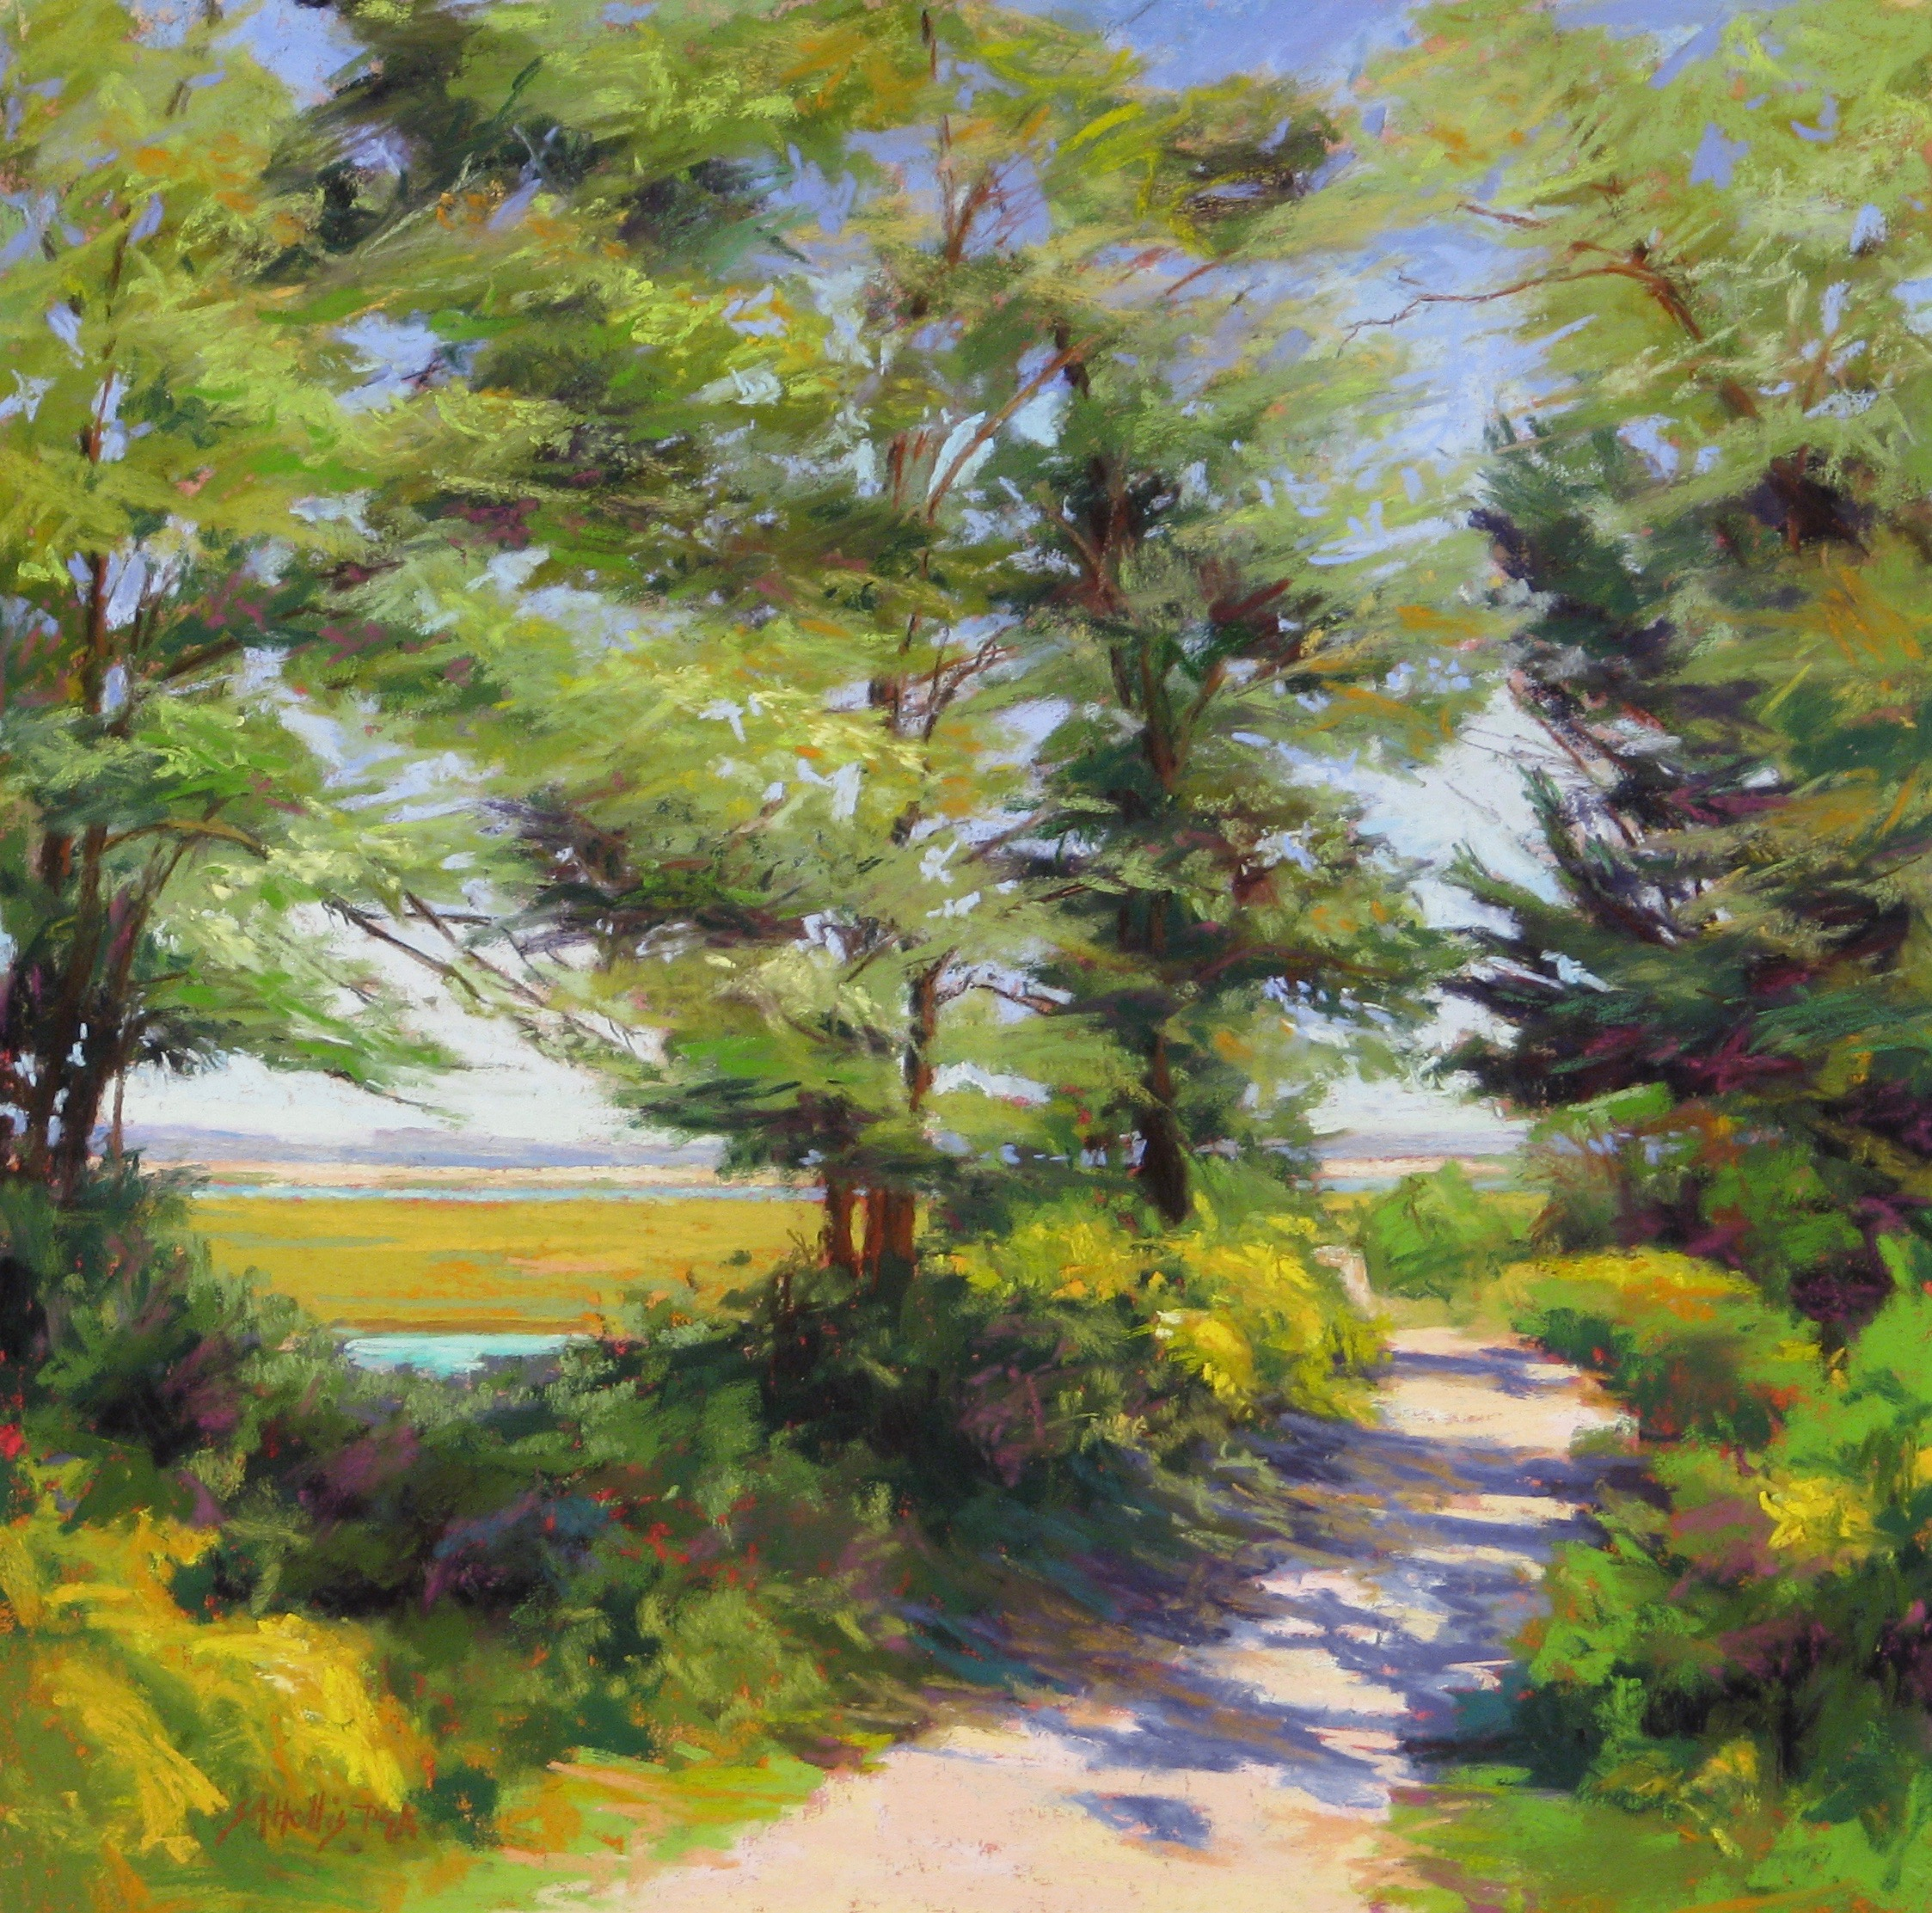 All Work Square at Creative Art Center, Chatham, MA - JULY 19 - AUGUST 29FIRT HILL - 13 X13 - PASTEL